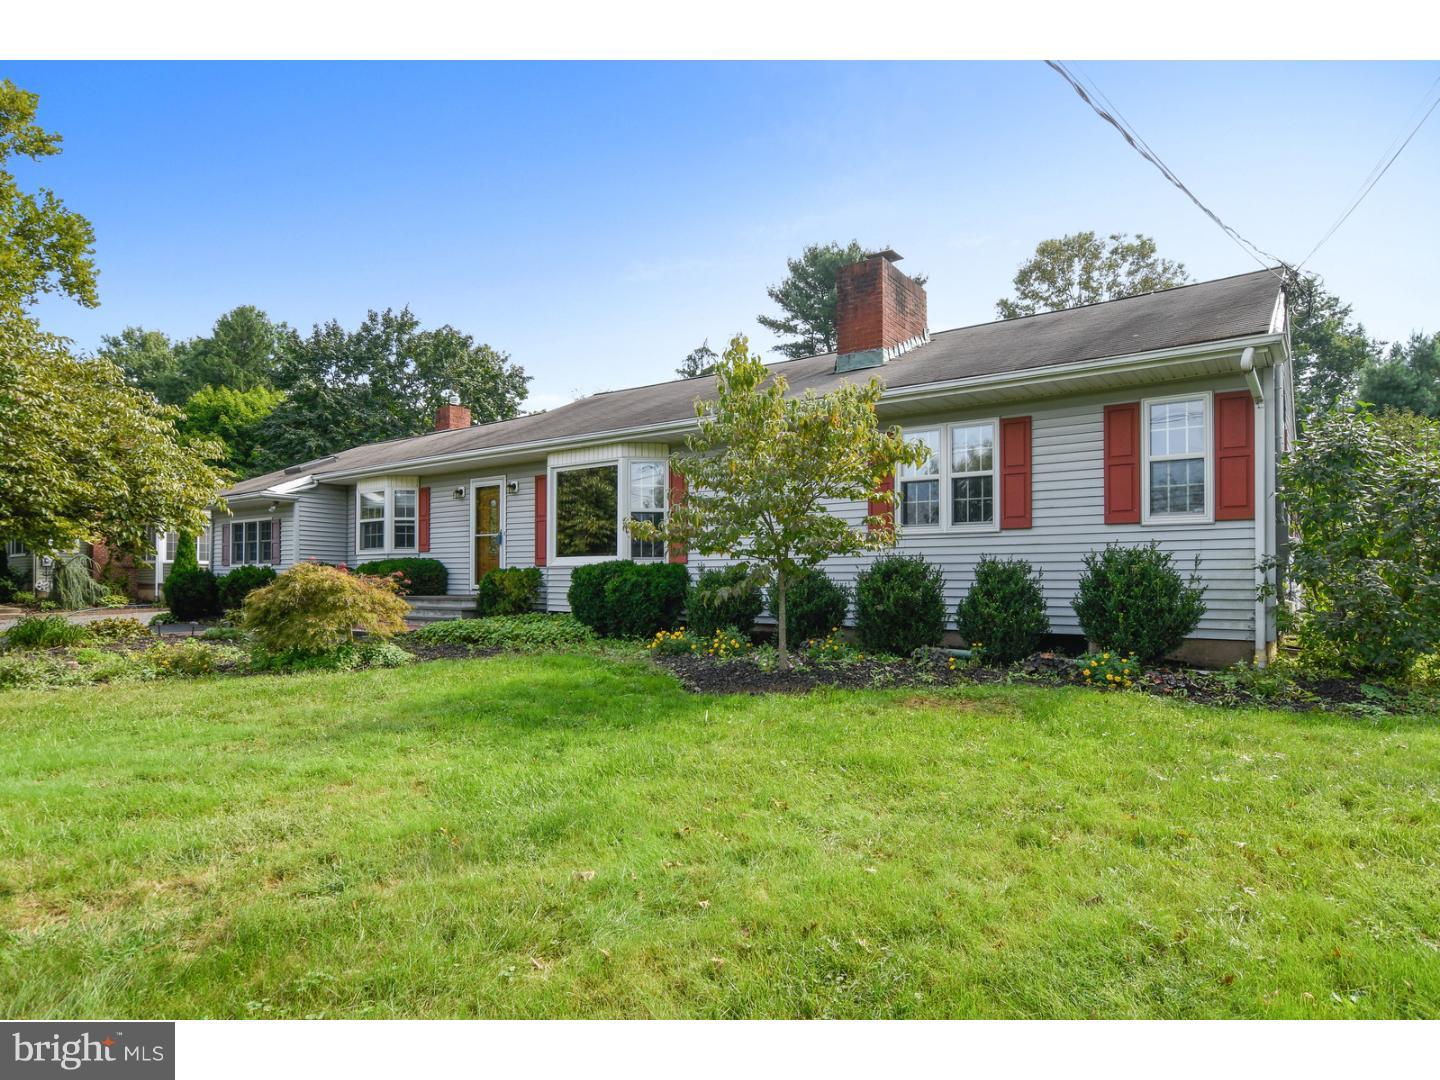 Property for Sale at 111 INGLESIDE Avenue Pennington, New Jersey 08534 United States